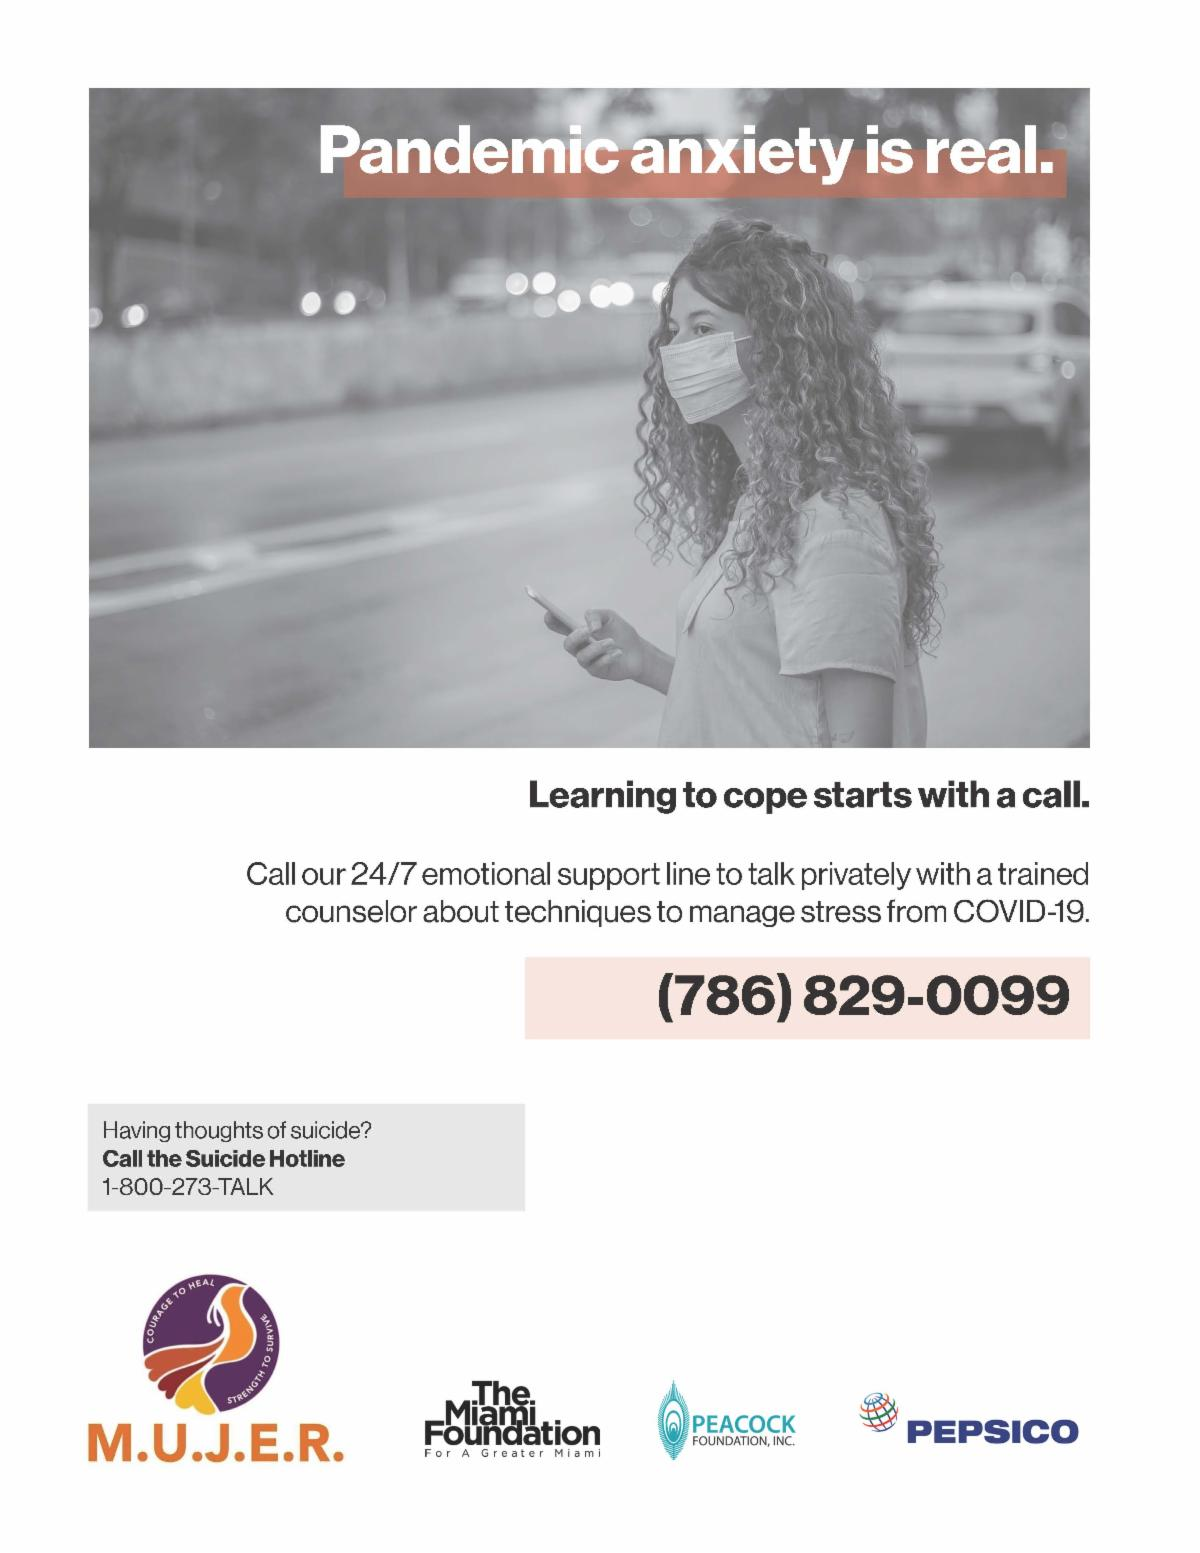 MUJER flyer for a COVID-19 helpline.